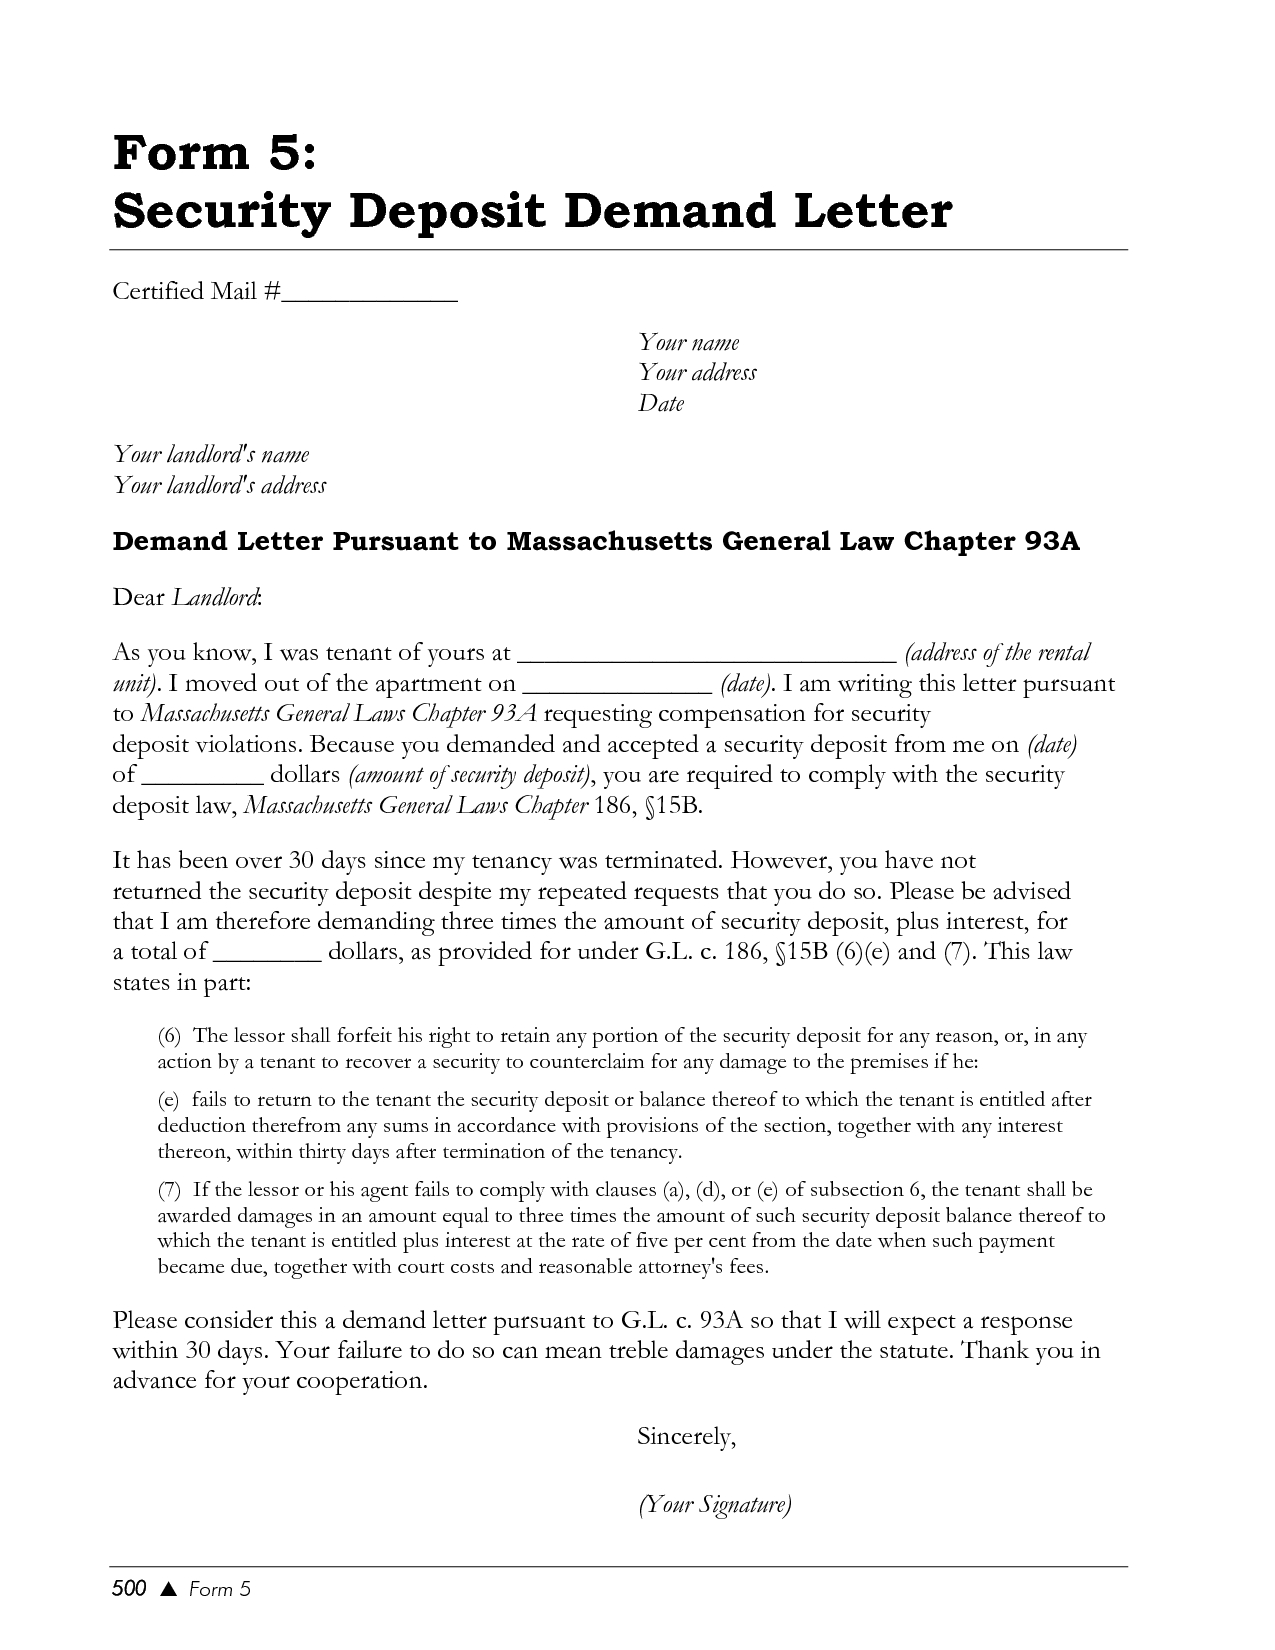 Security Deposit Demand Letter Template Florida - Free Cover Letter Templates Writing A Demand Letter